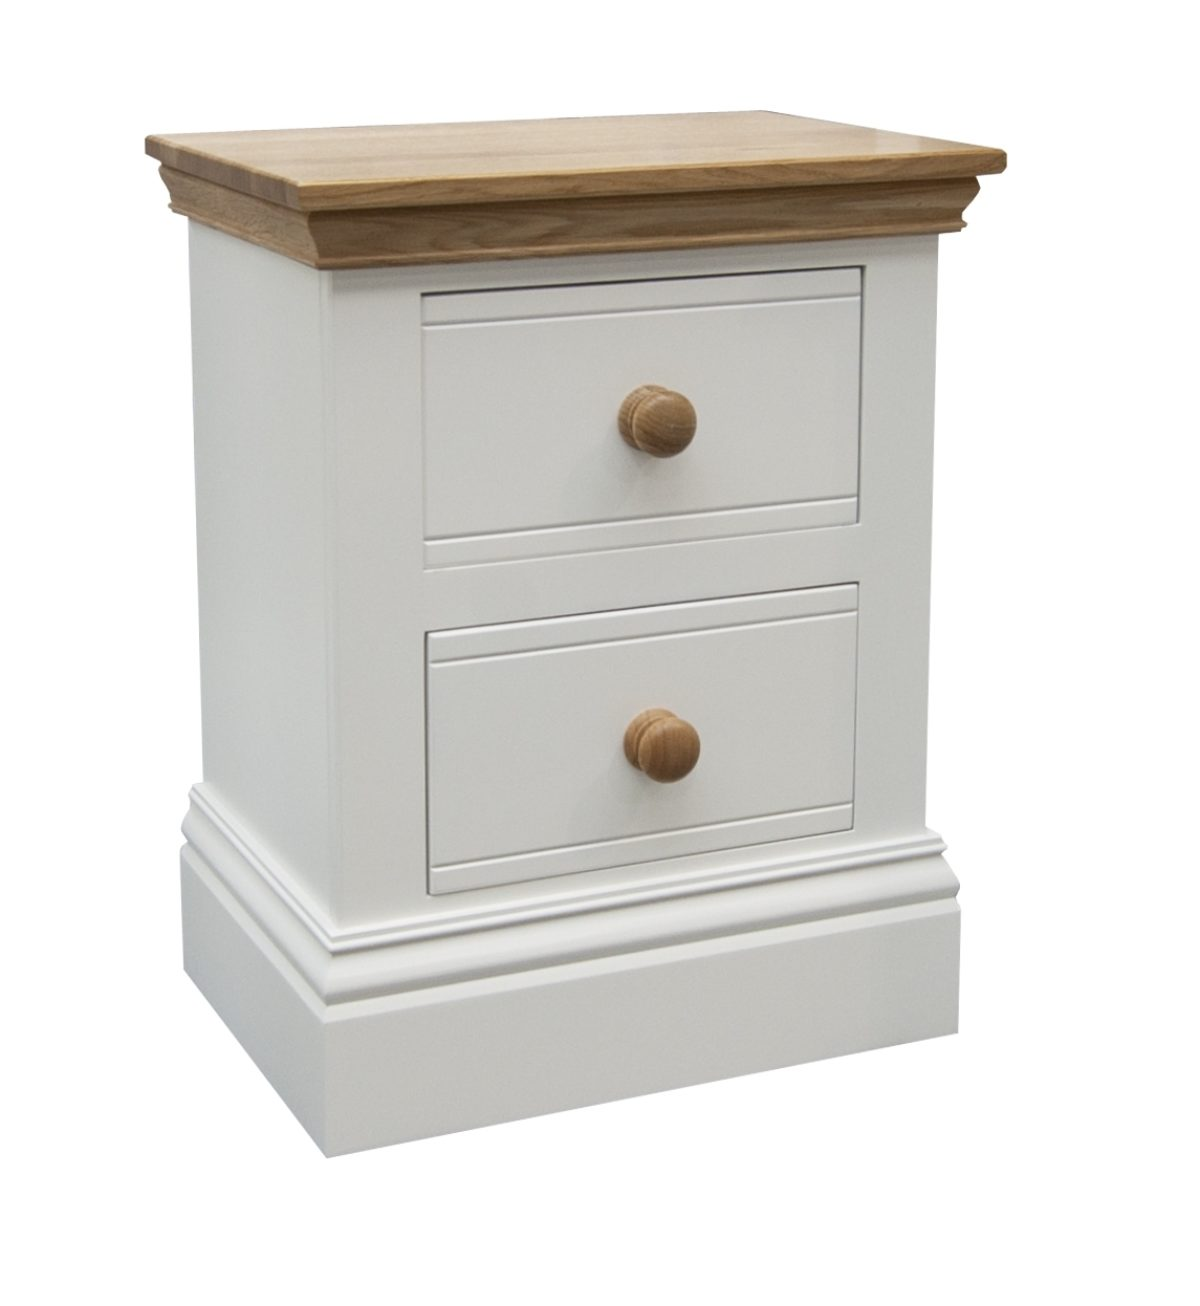 Small 2 Drawer Bedside With Wooden Knobs